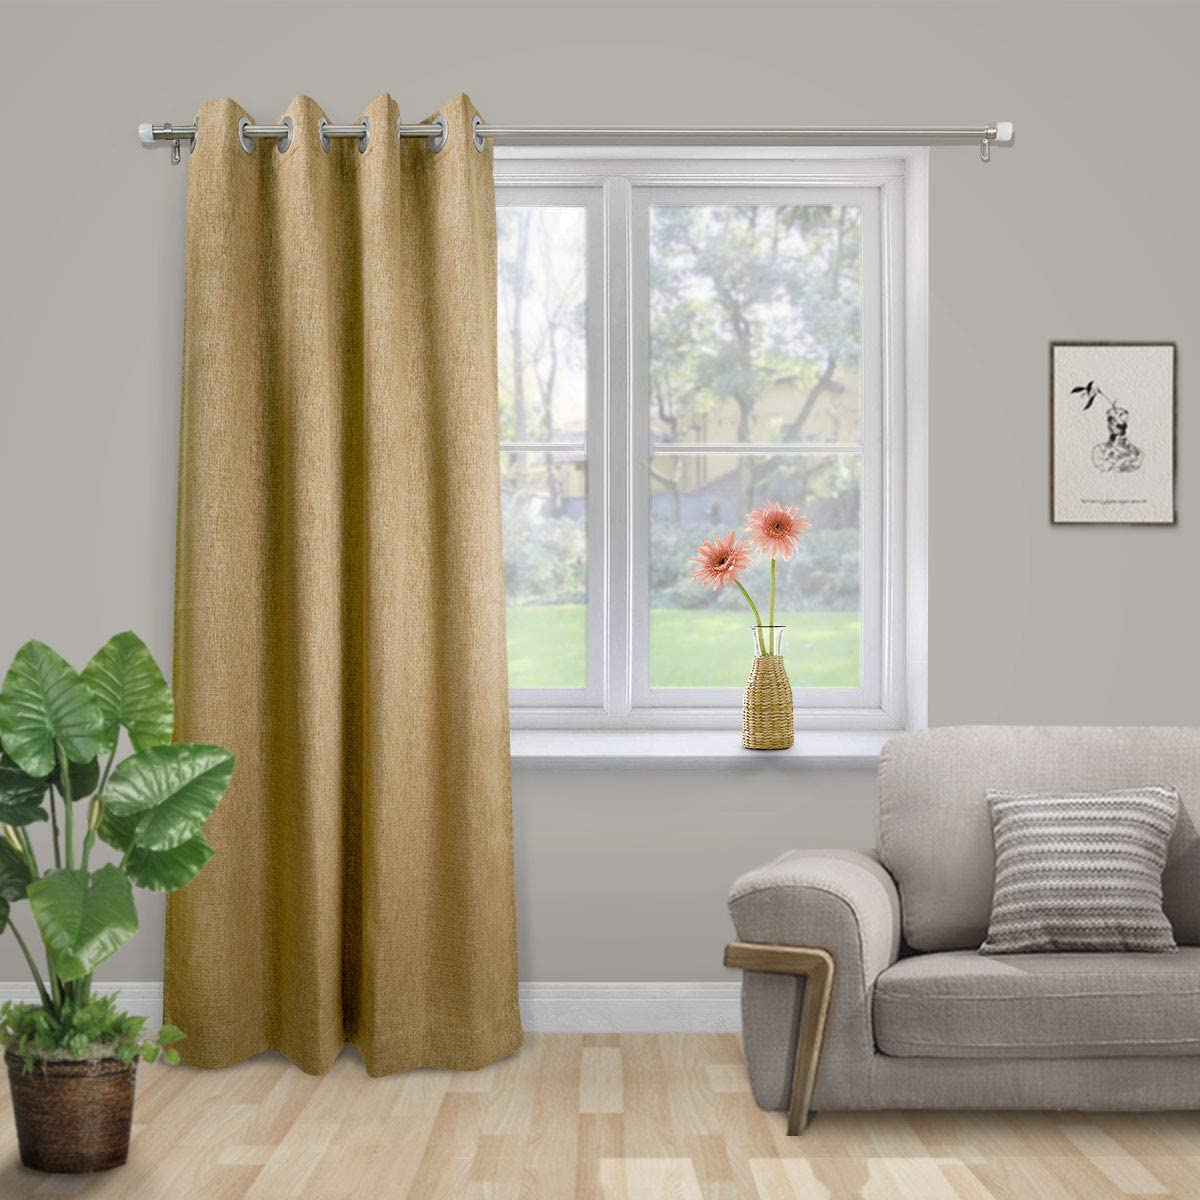 SCHRLING Blackout Gold Grommet Top Textured Curtain for Bedroom Linen Look Thermal Insulated Drape,1 Panel 52 W X 84 L